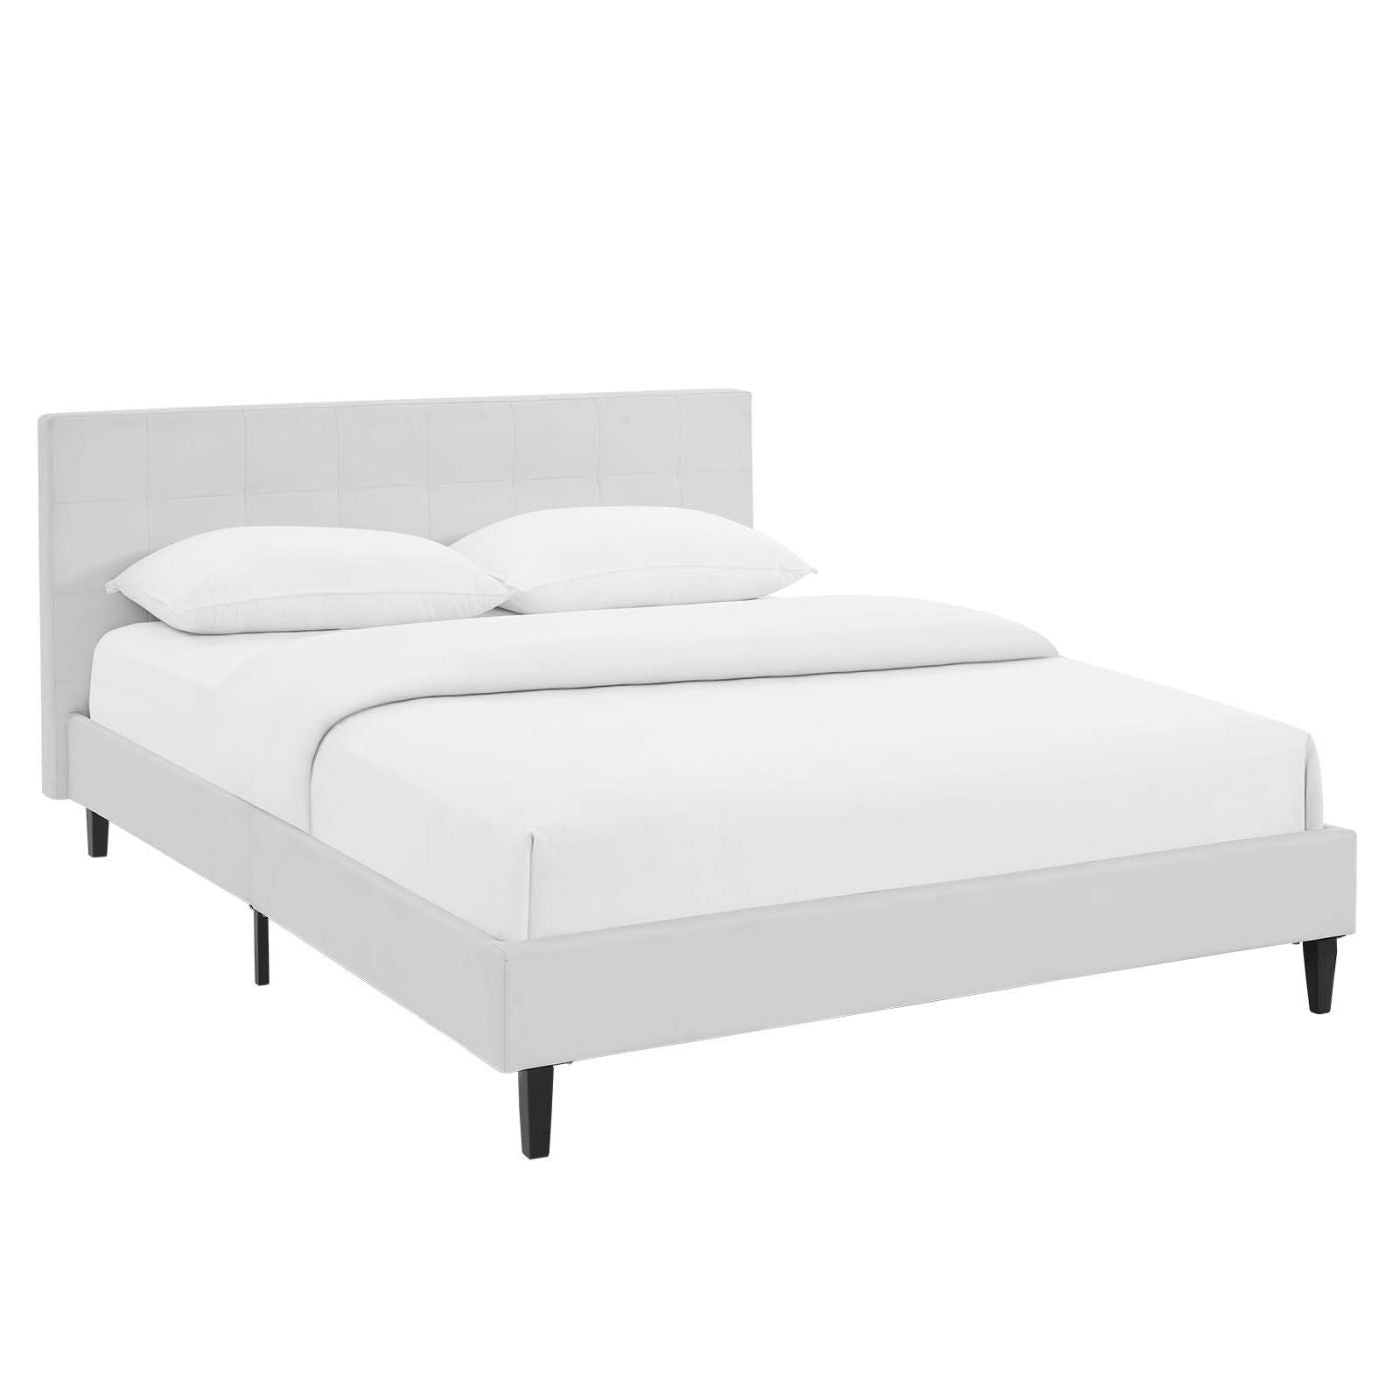 Picture of: Modway Beds On Sale Mod 5423 Whi Linnea Full Faux Leather Platform Bed Frame With Headboard Only Only 243 30 At Contemporary Furniture Warehouse